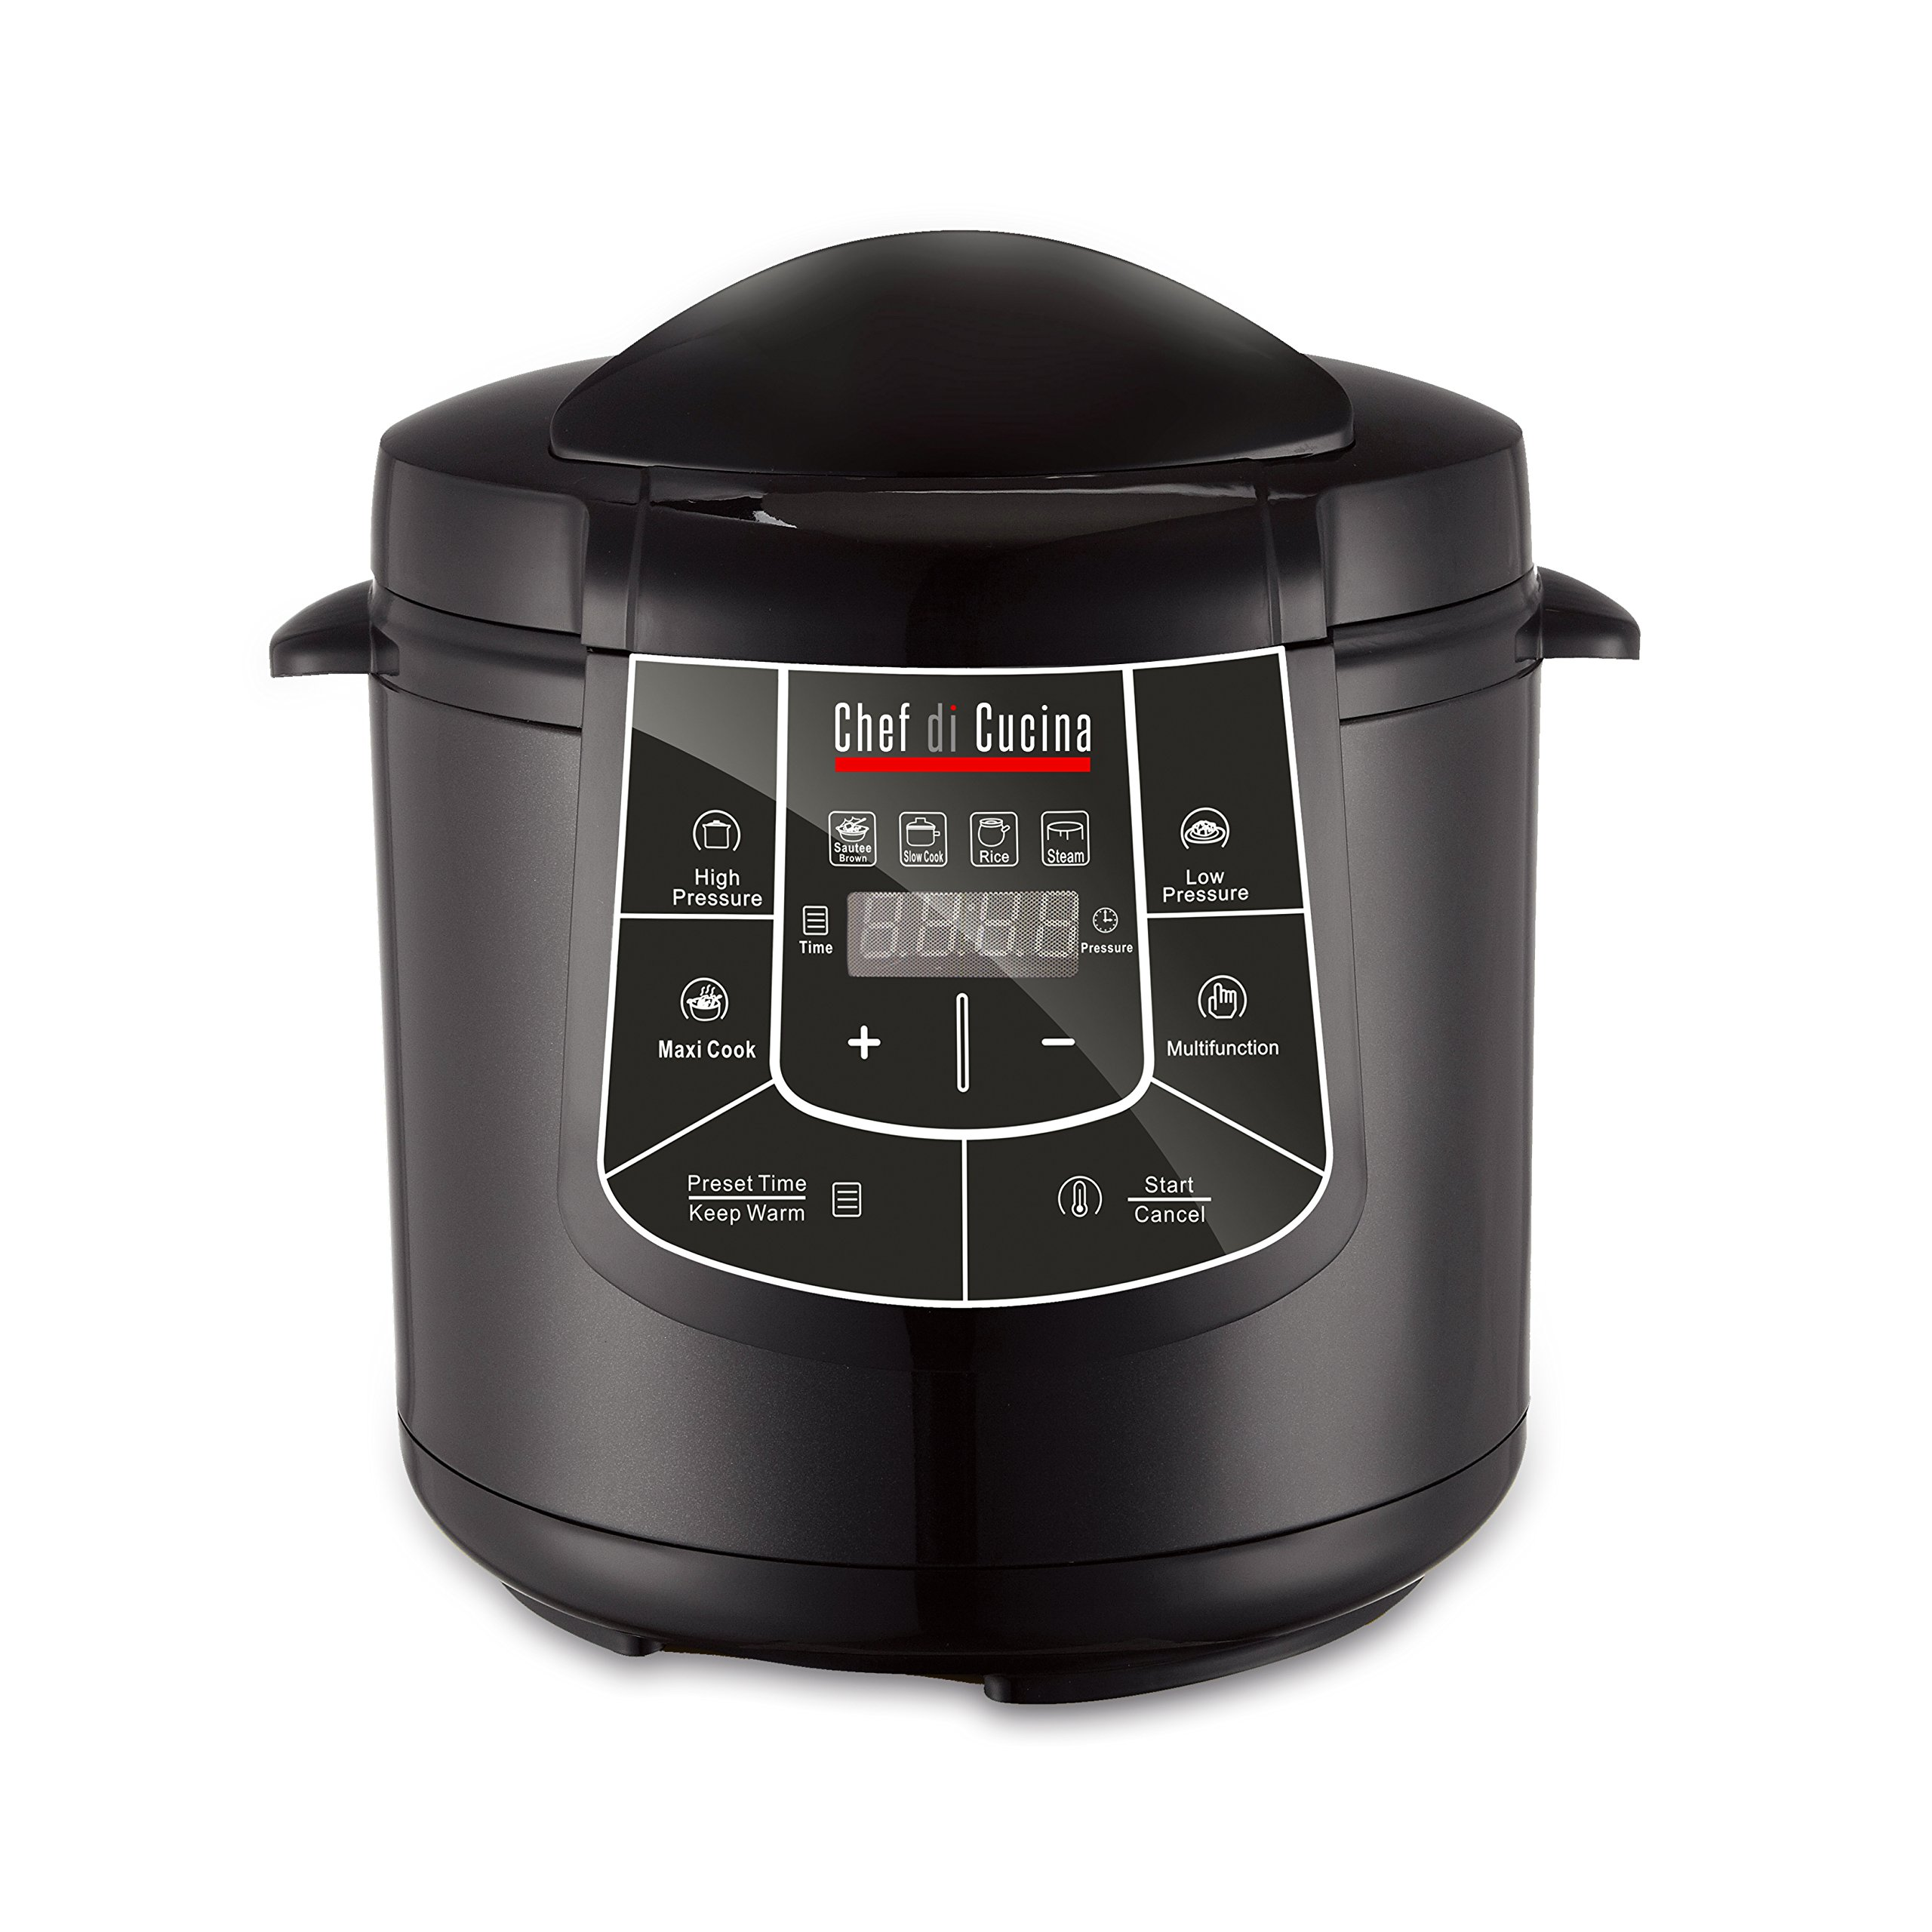 Chef Di Cucina CC600 Multi Cooker,, Black